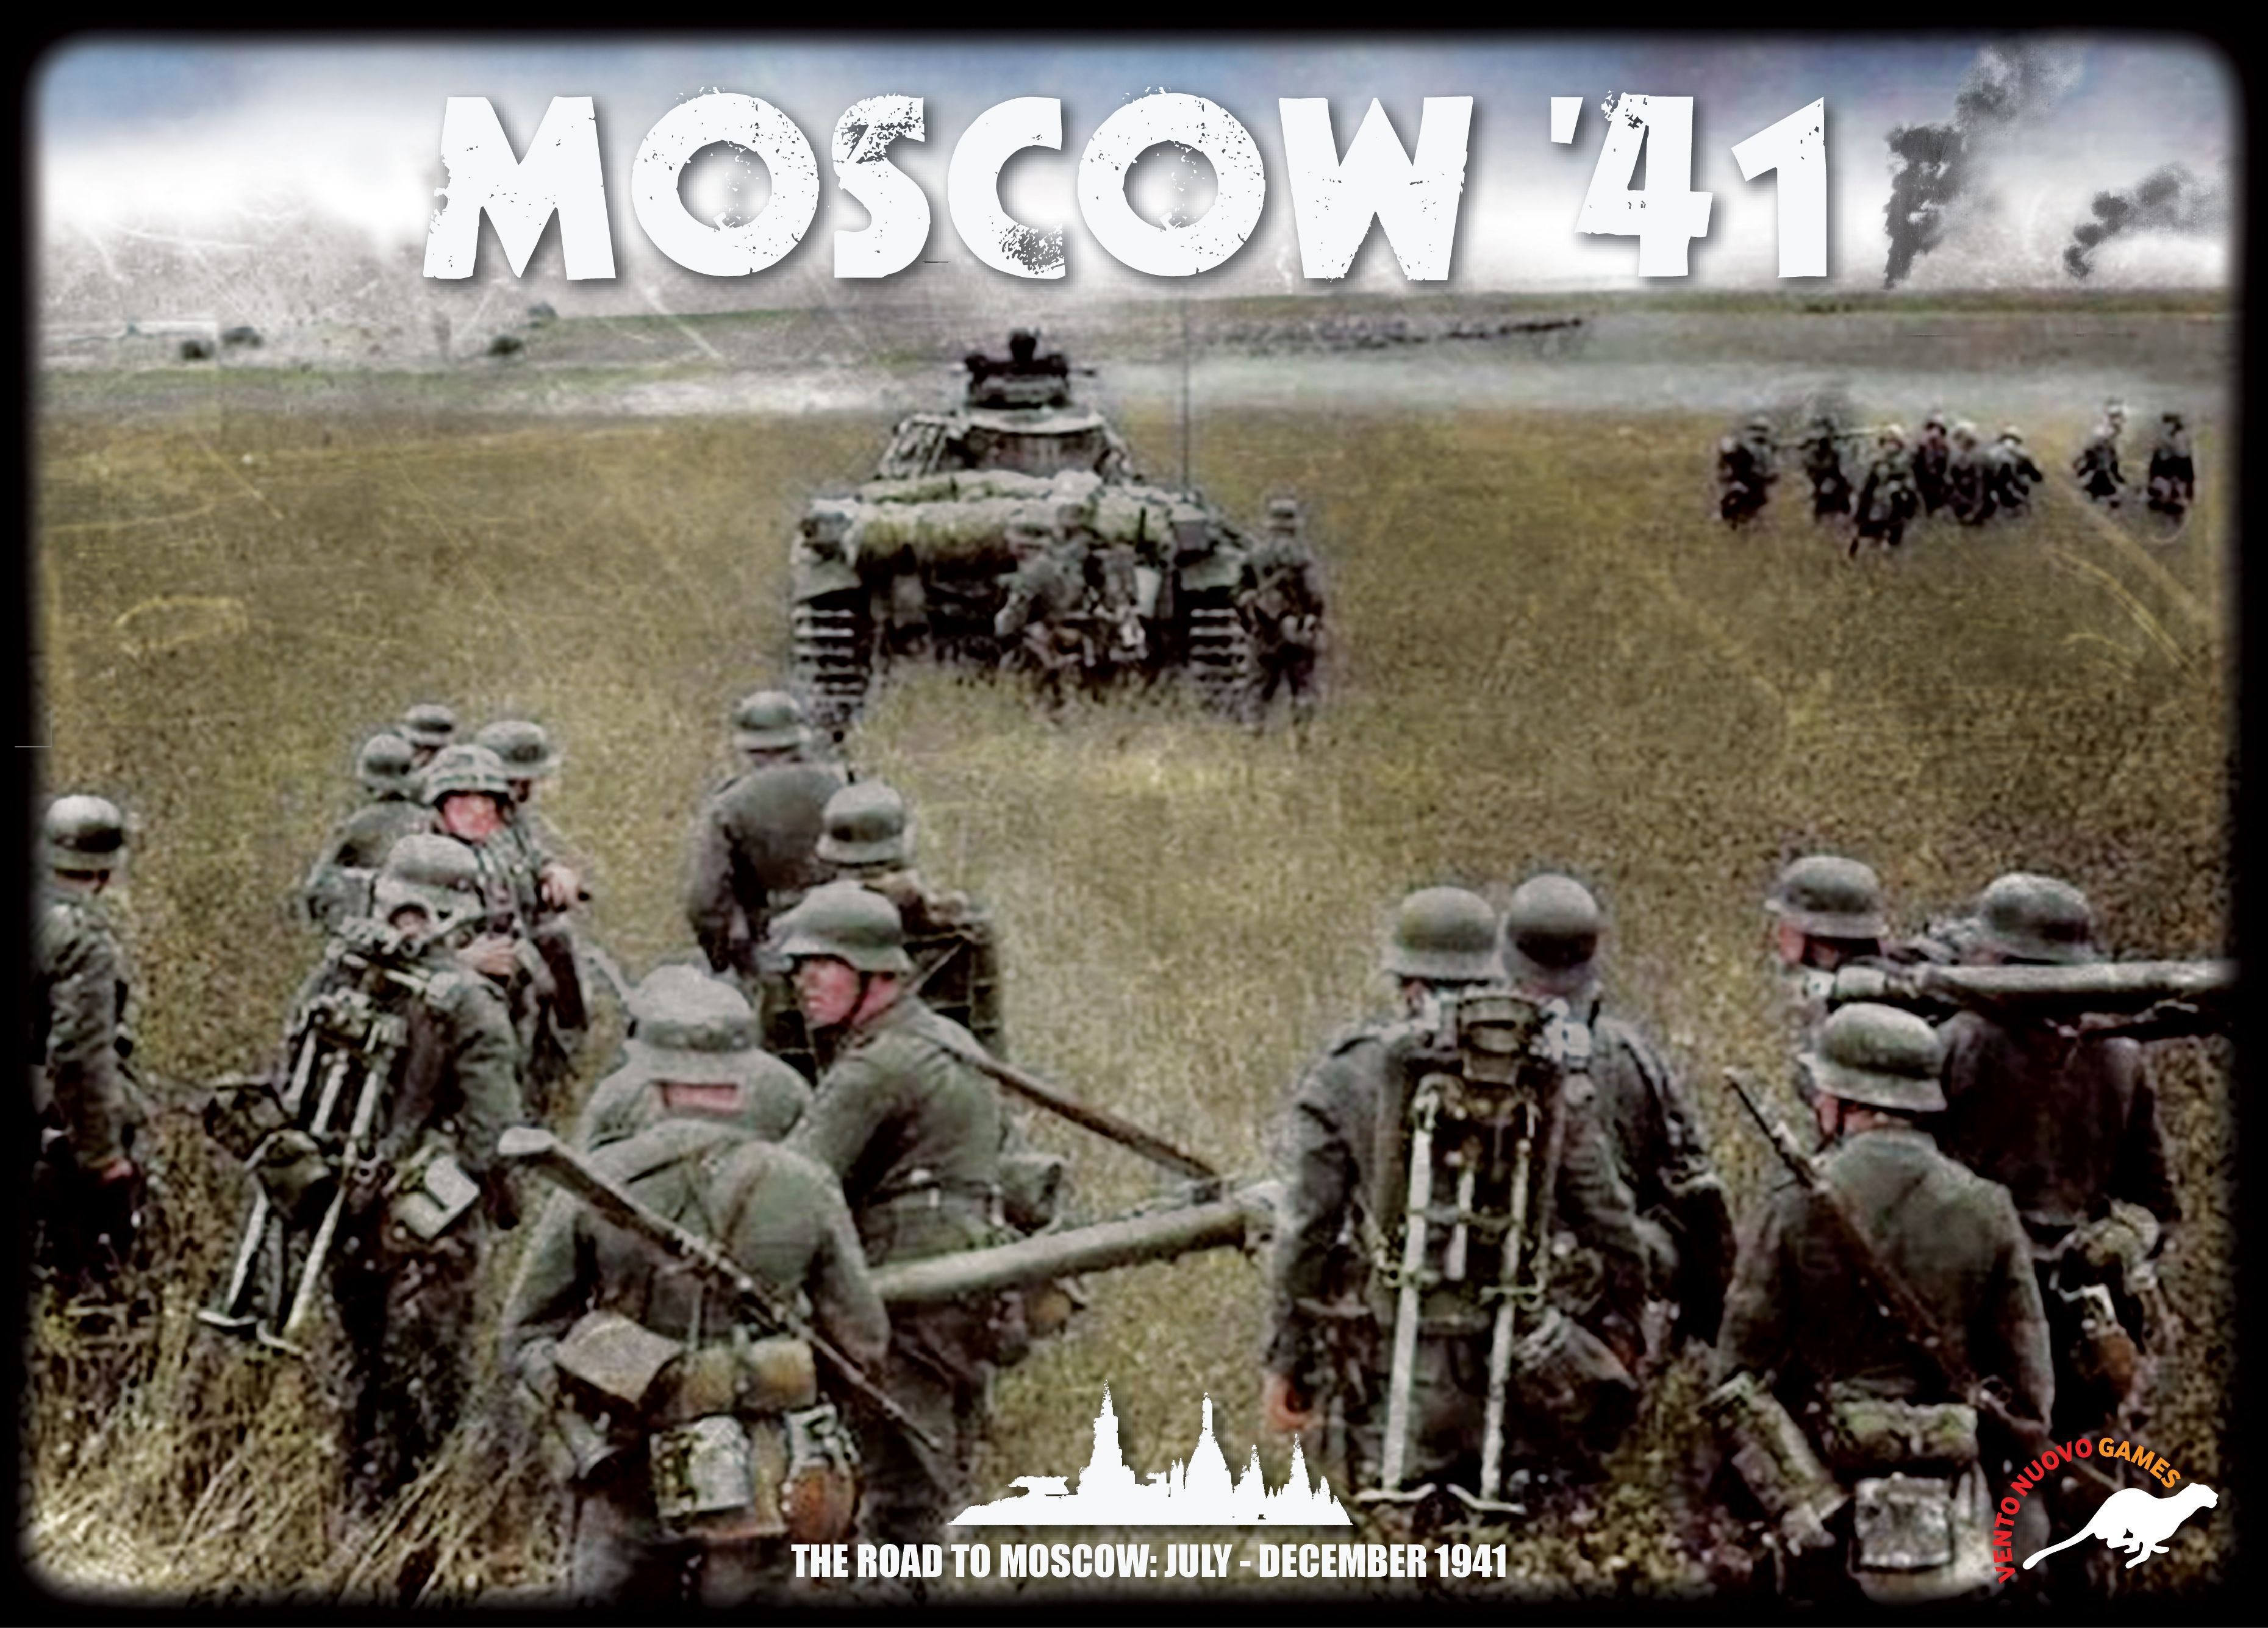 Moscow '41